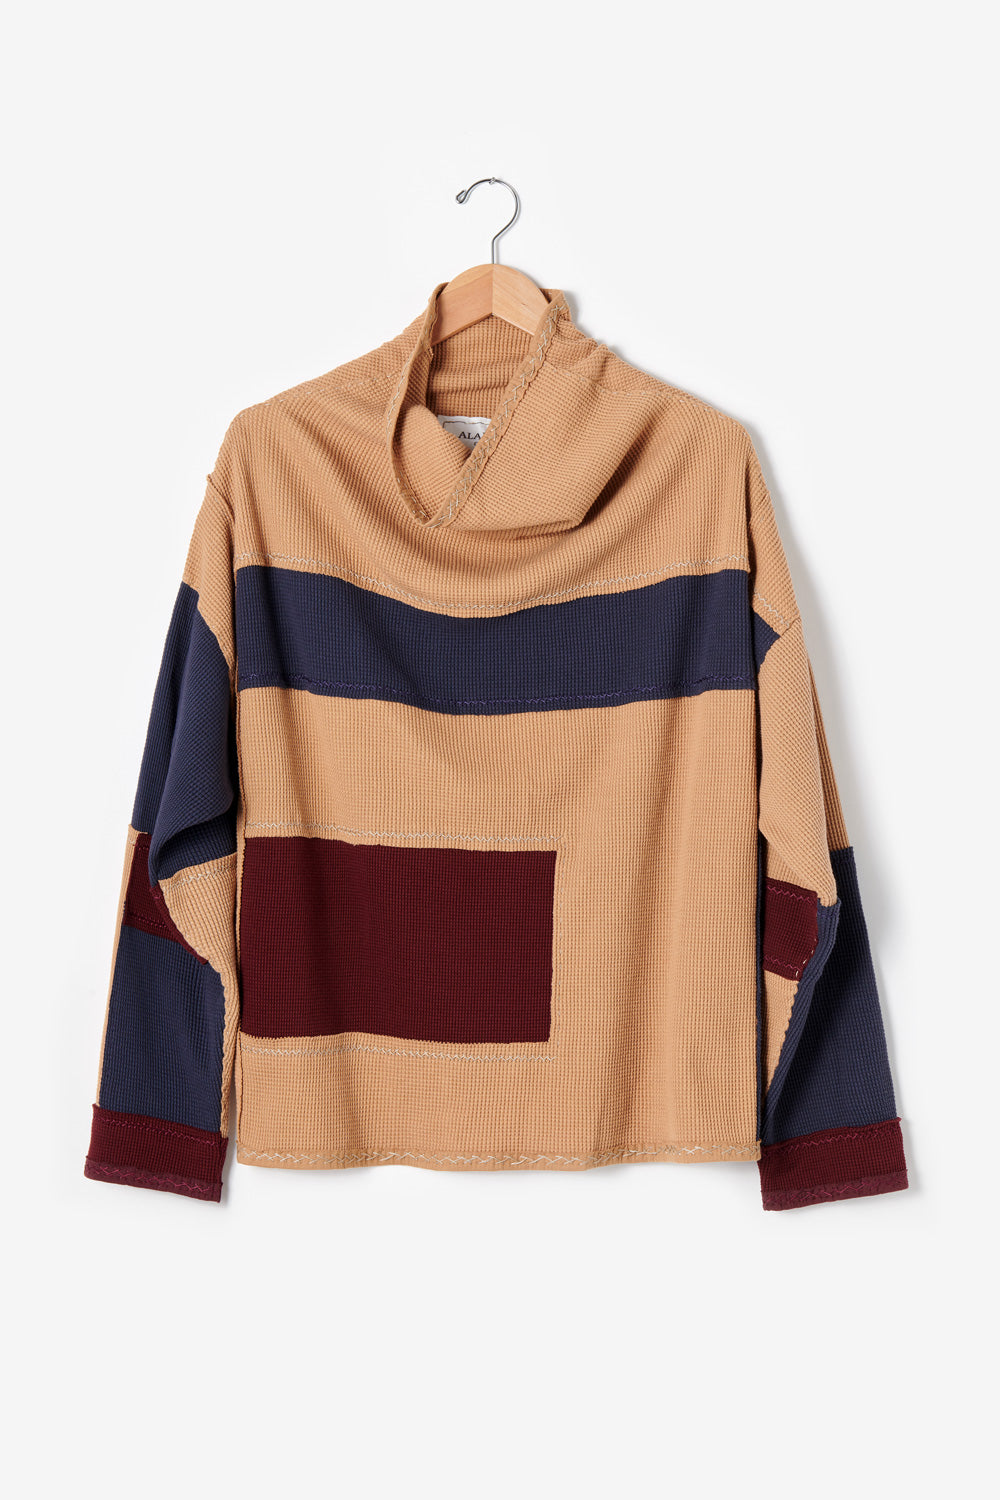 Alabama Chanin Artisan-Designed Zero Waste Waffle Sweatshirt in Camel and Navy Organic Cotton Waffle and Heavy-weight rib in Plum One-of-a-kind #30453